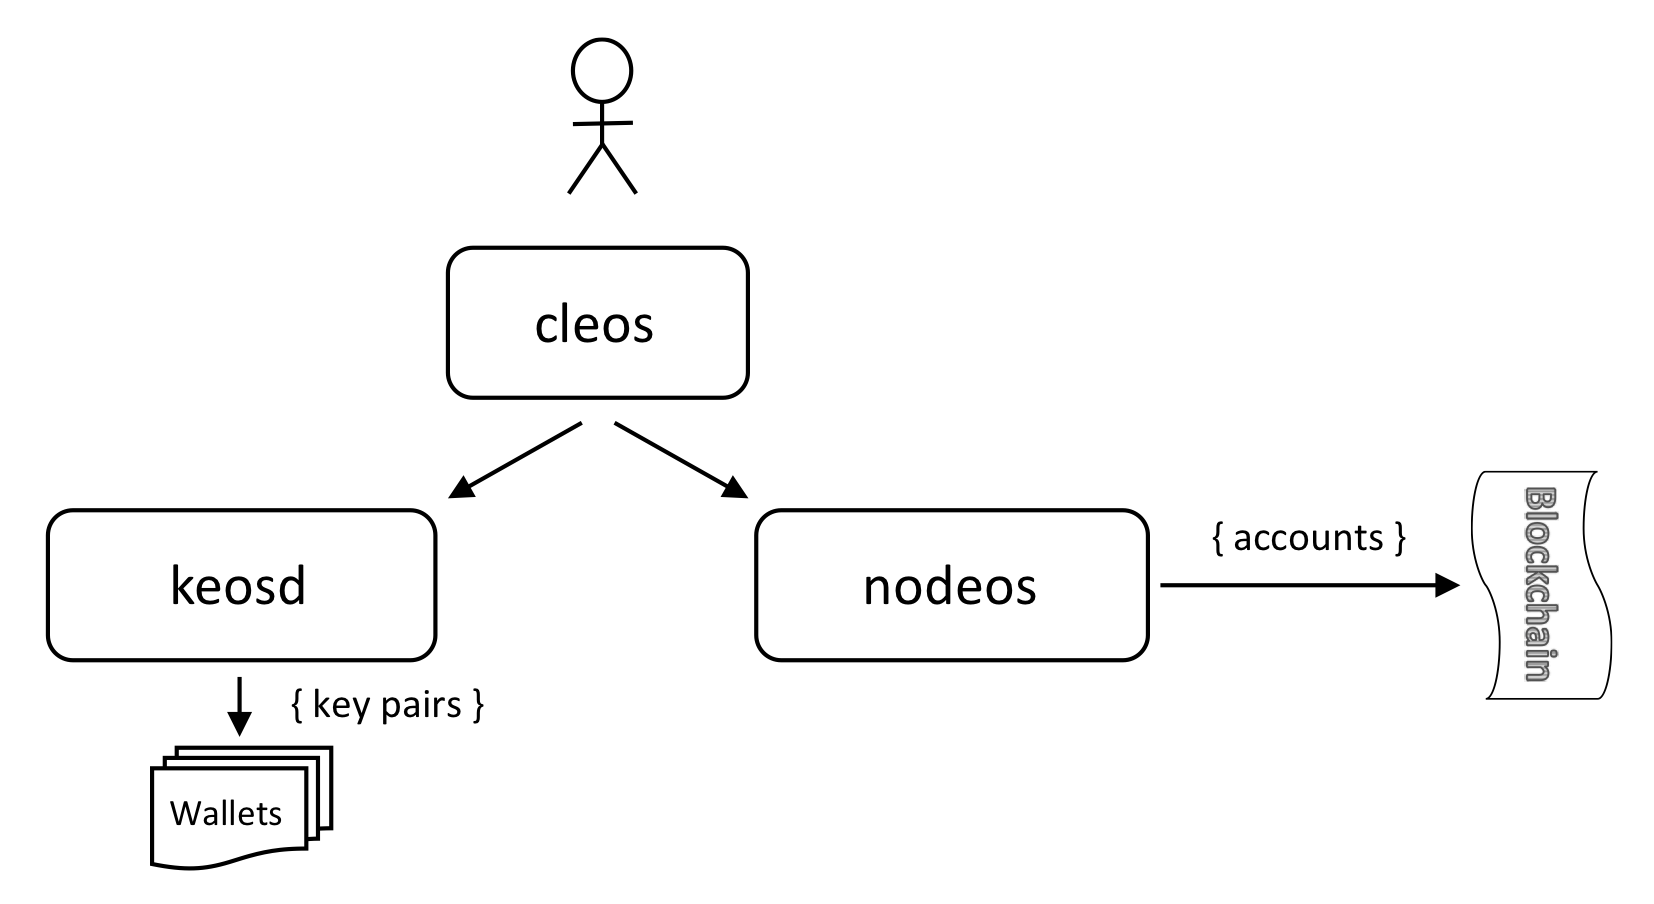 Learn about Keys, Wallets and Accounts with cleos